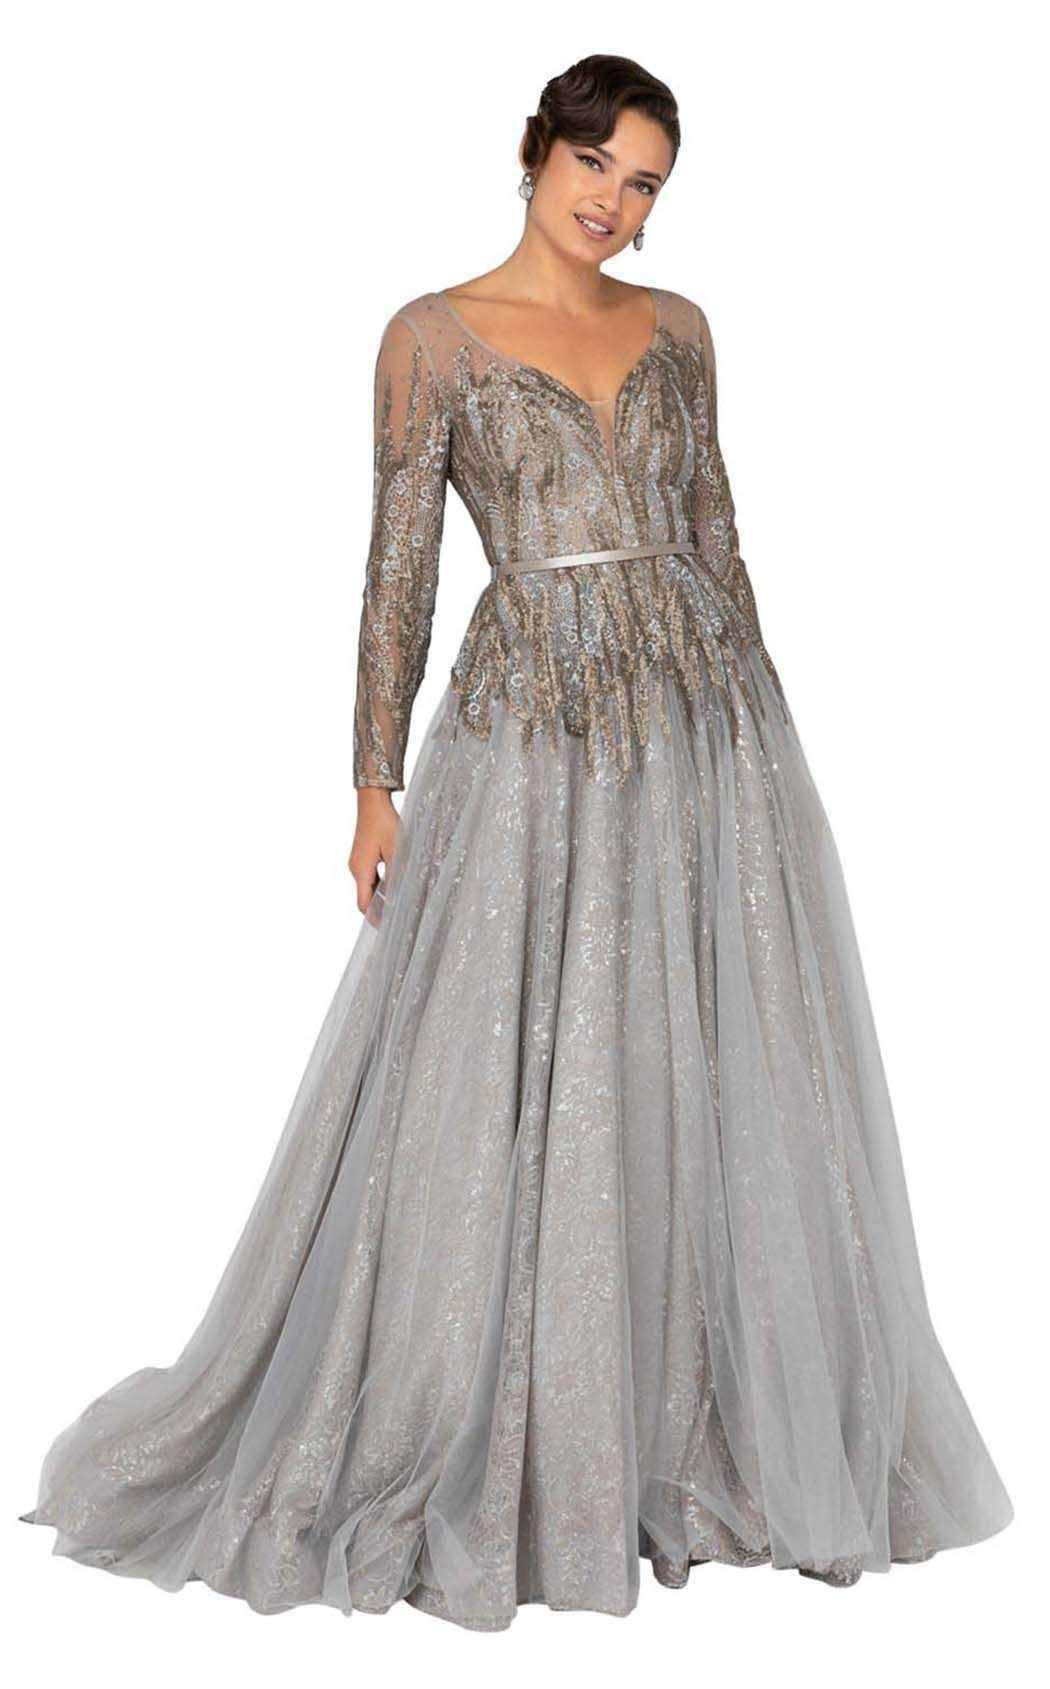 Terani Couture 1913e9234 Embellished Lace Deep V Neck Ballgown Ball Gowns Terani Couture Dresses